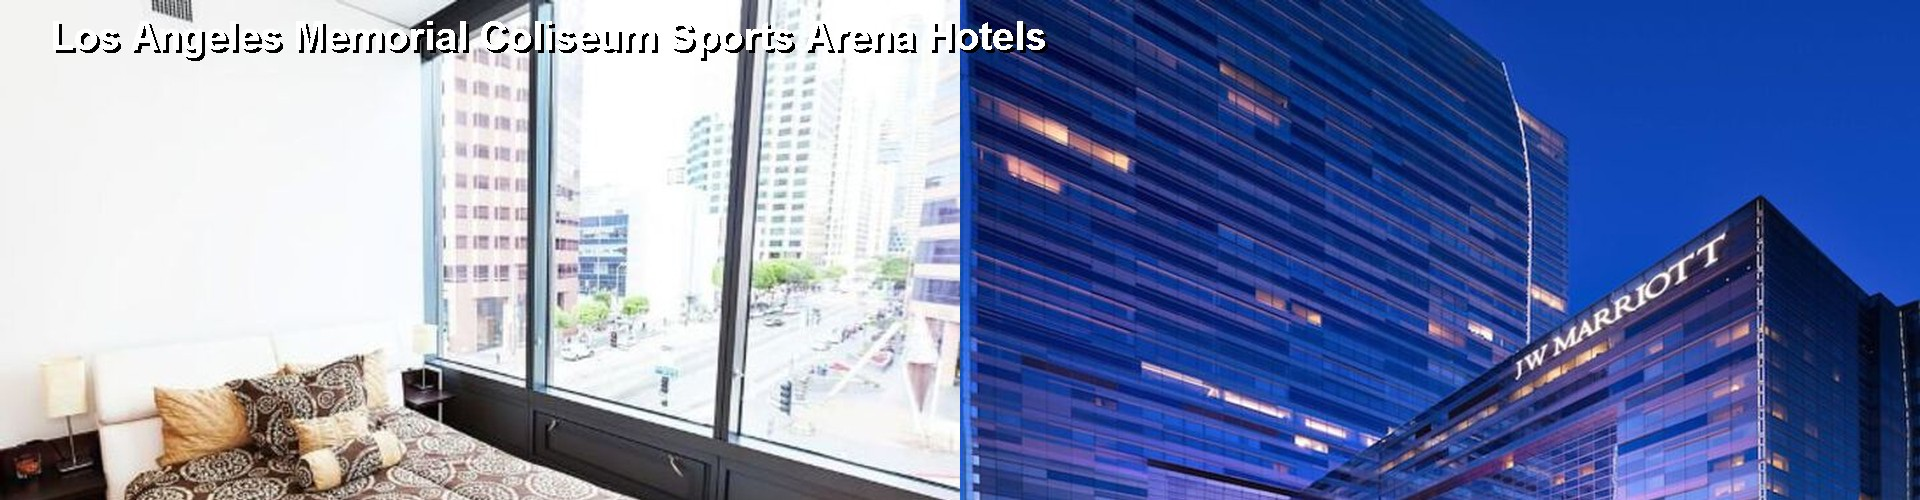 5 Best Hotels near Los Angeles Memorial Coliseum Sports Arena